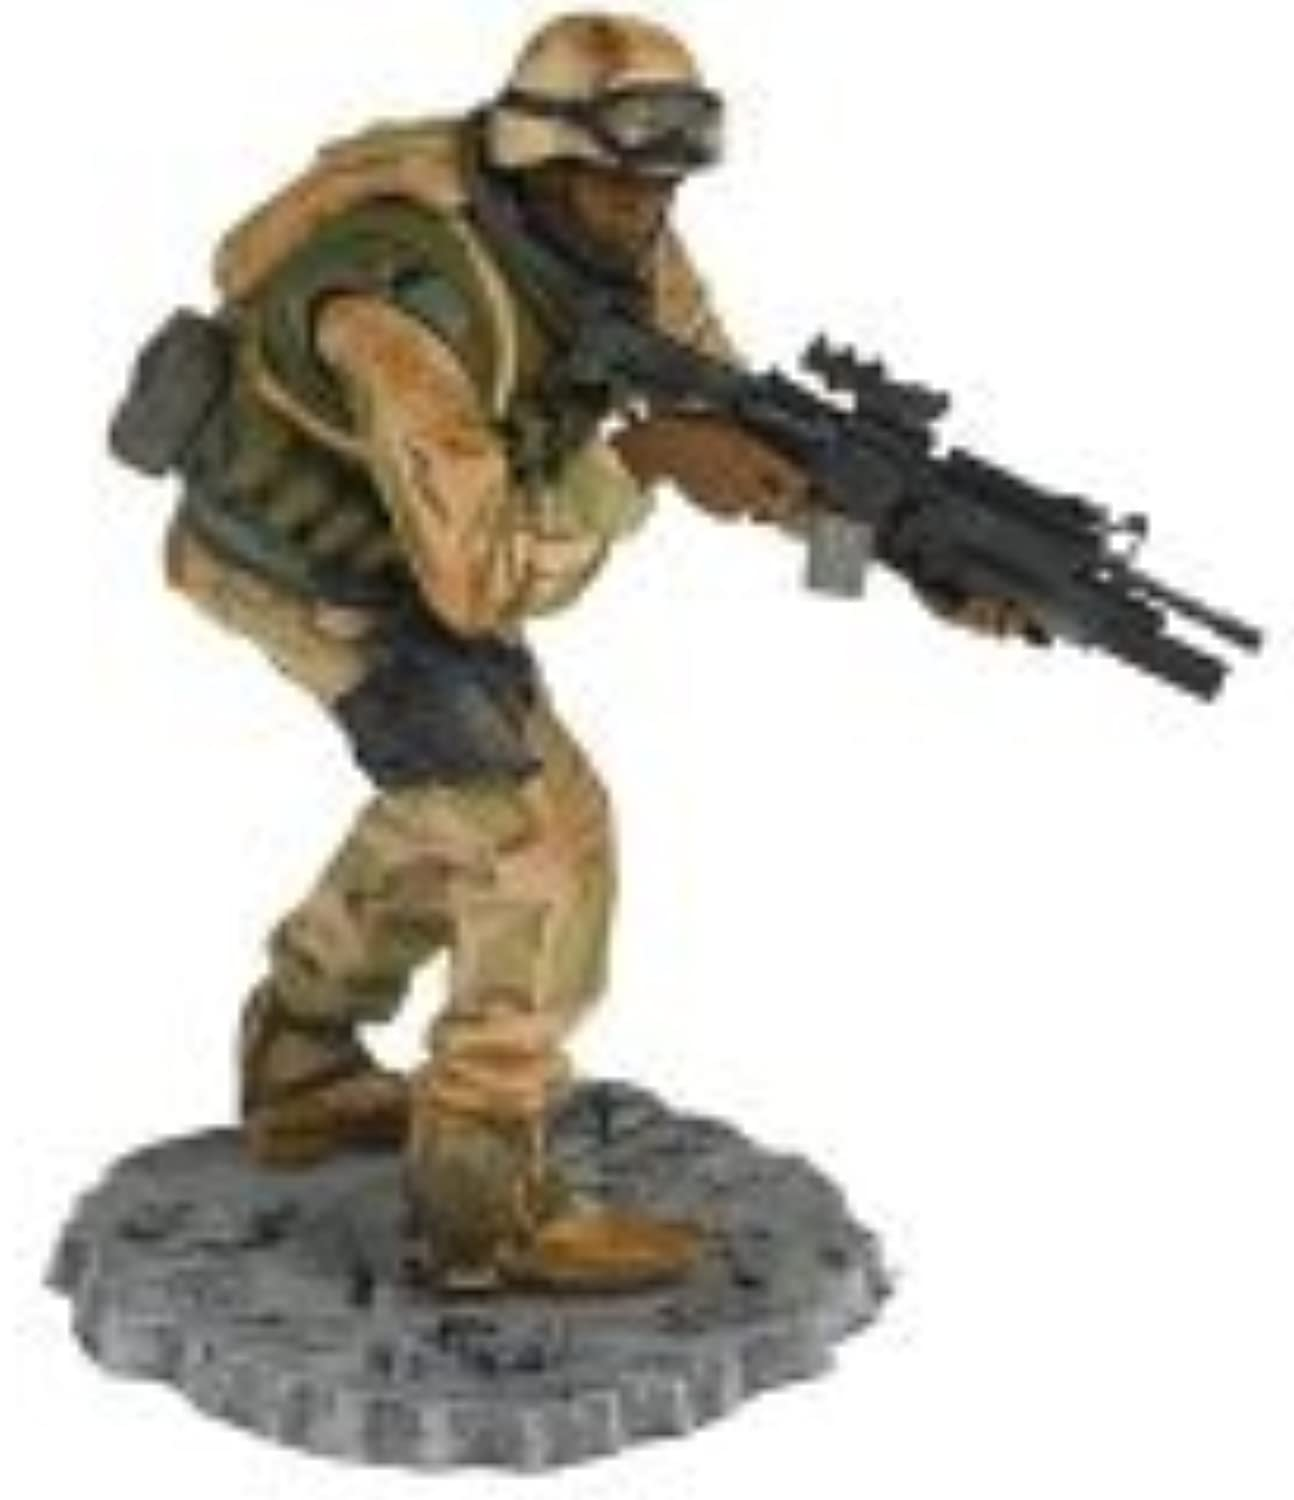 T M P Intl McFarlane's Soldiers 2nd Tour of Duty Army Desert Infantry Grenadier AfricanAmerican